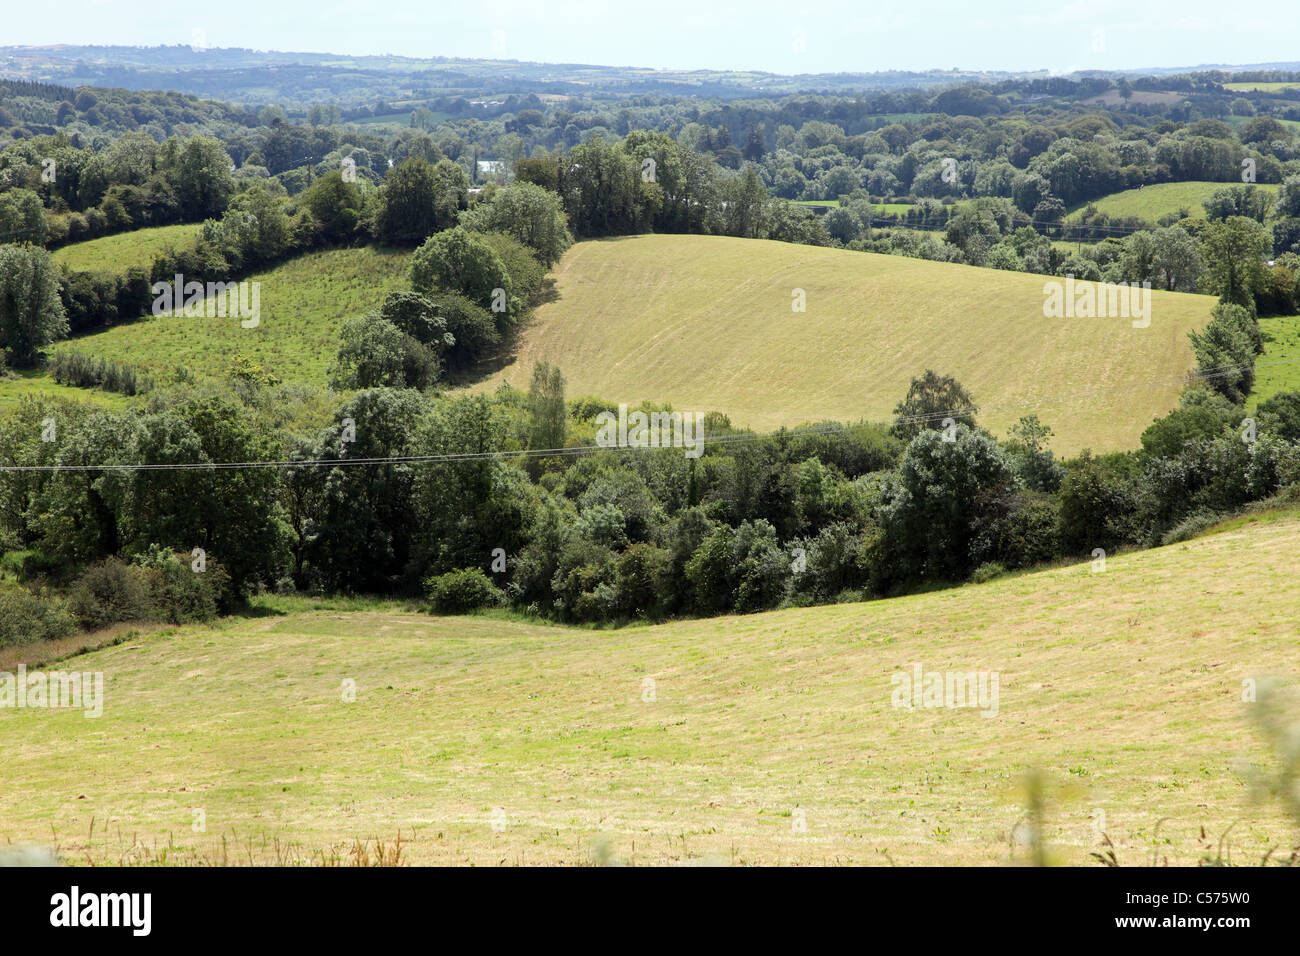 Co Monaghan farmland after the hay has been cut - Stock Image